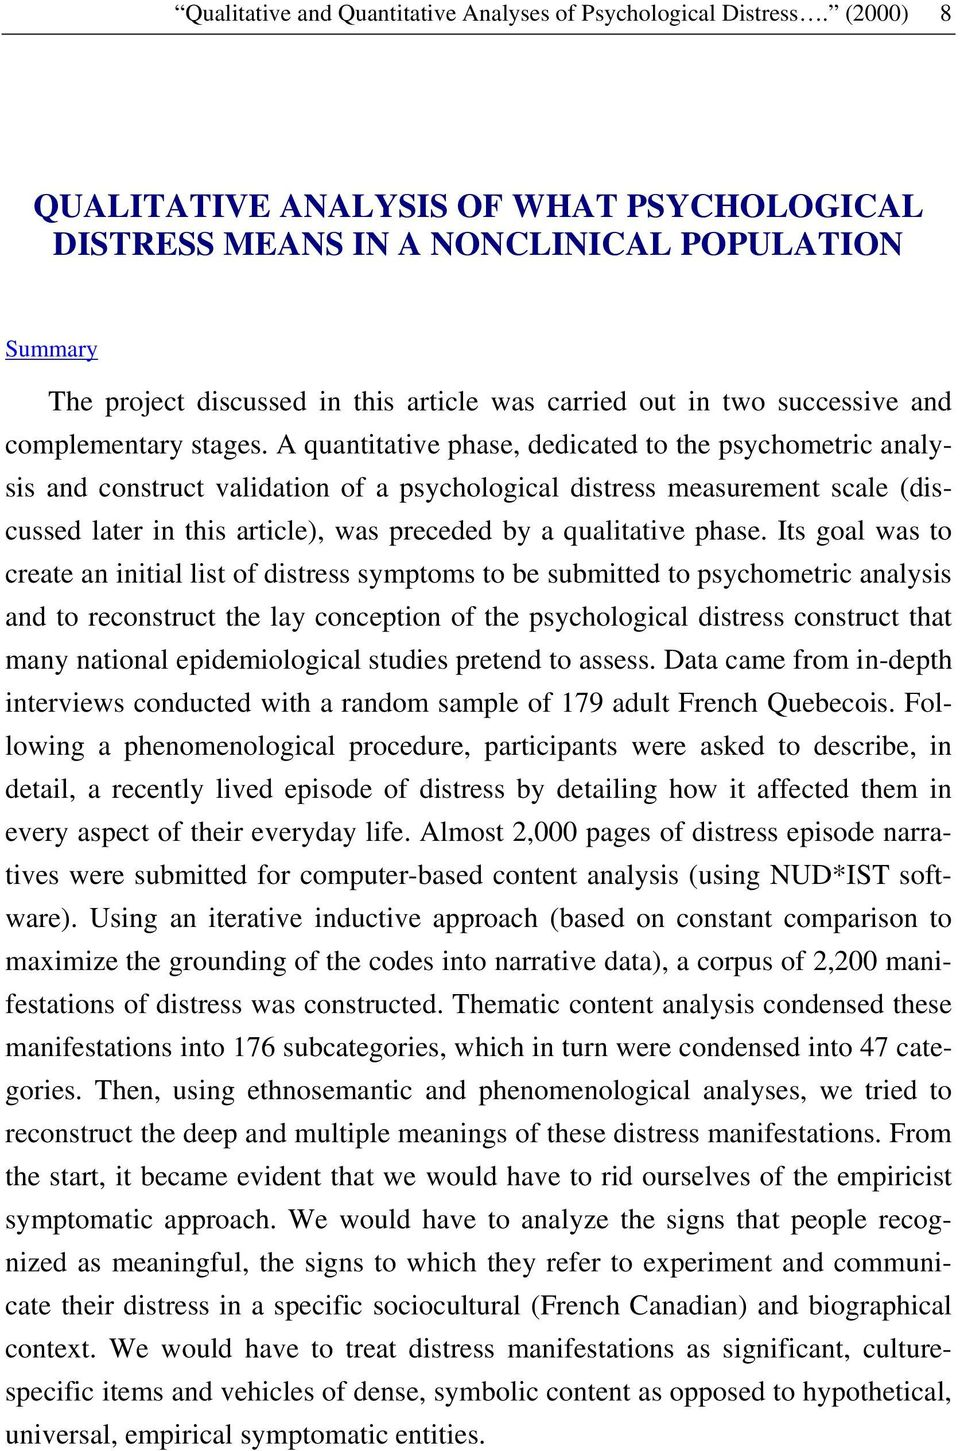 A quantitative phase, dedicated to the psychometric analysis and construct validation of a psychological distress measurement scale (discussed later in this article), was preceded by a qualitative